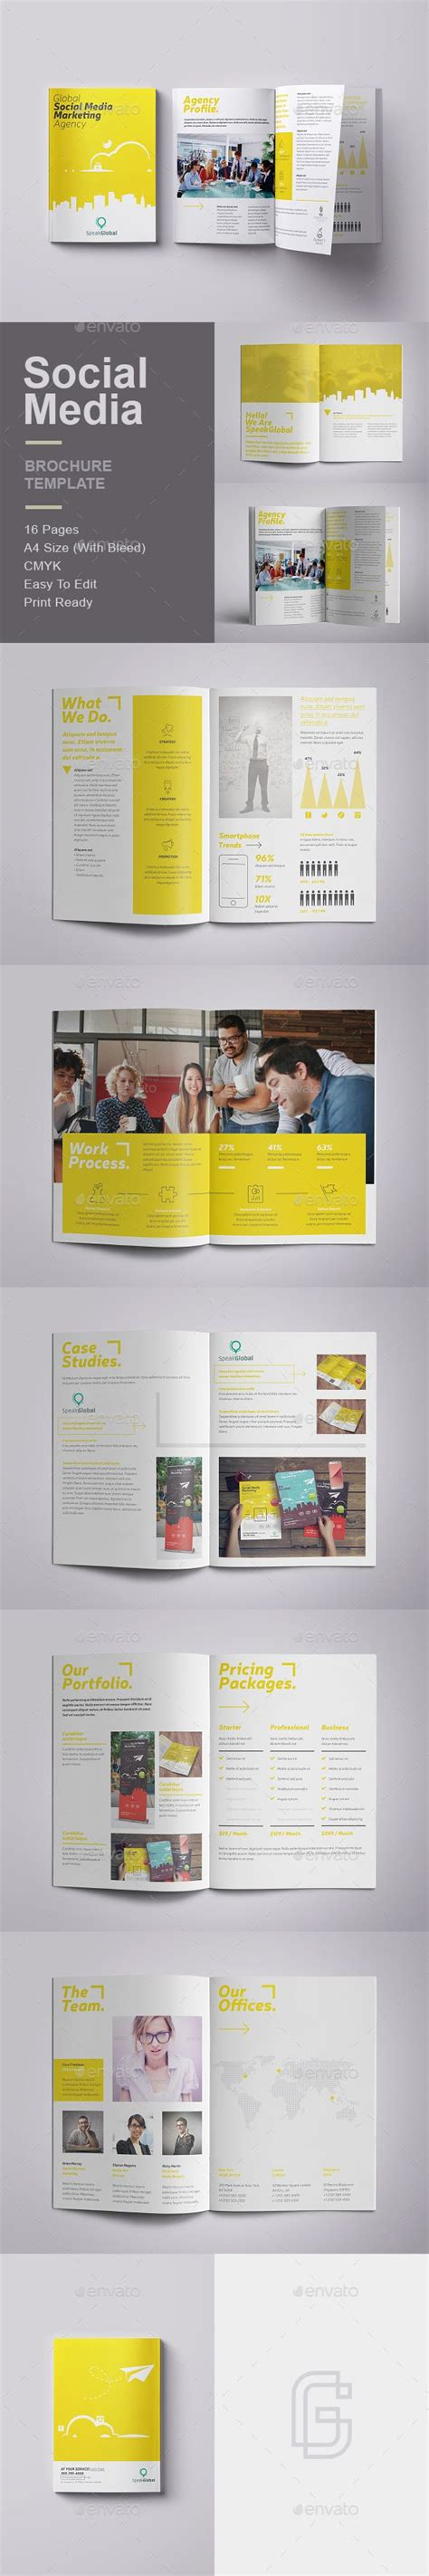 social media brochure template top 25 ideas about brochure design on phlet design booklet design and brochures